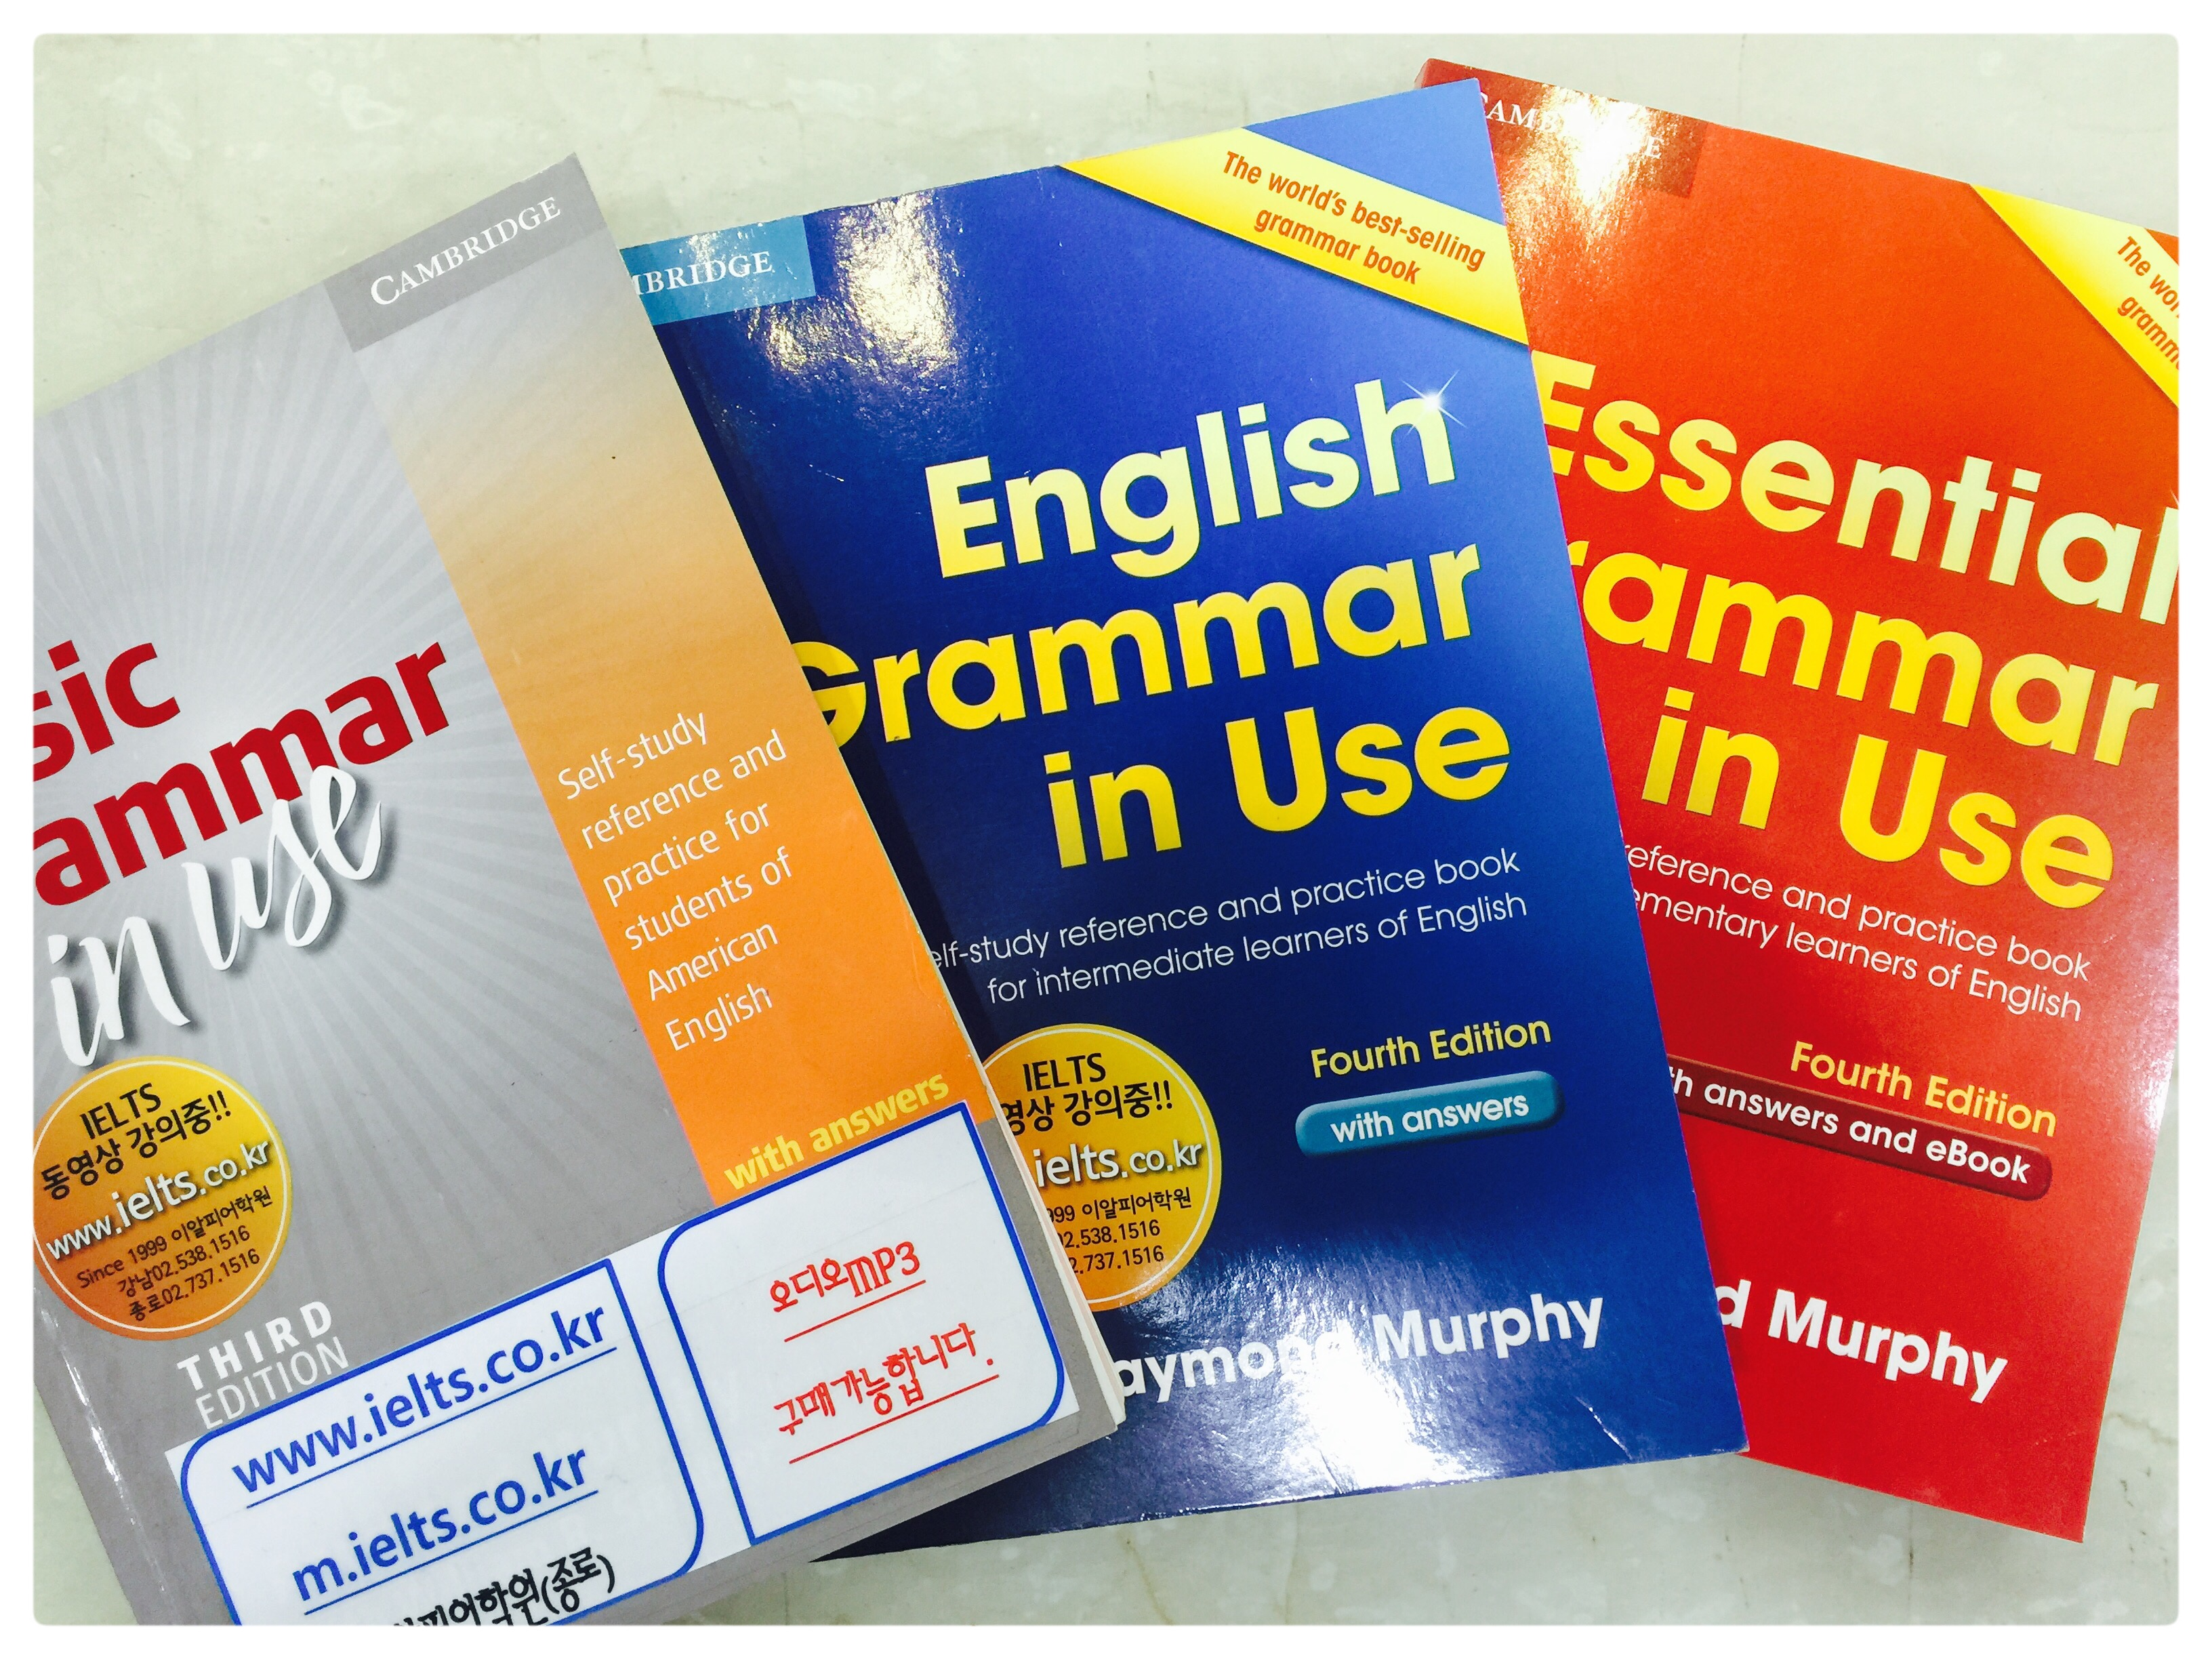 Basic, English, Essential grammar in Use